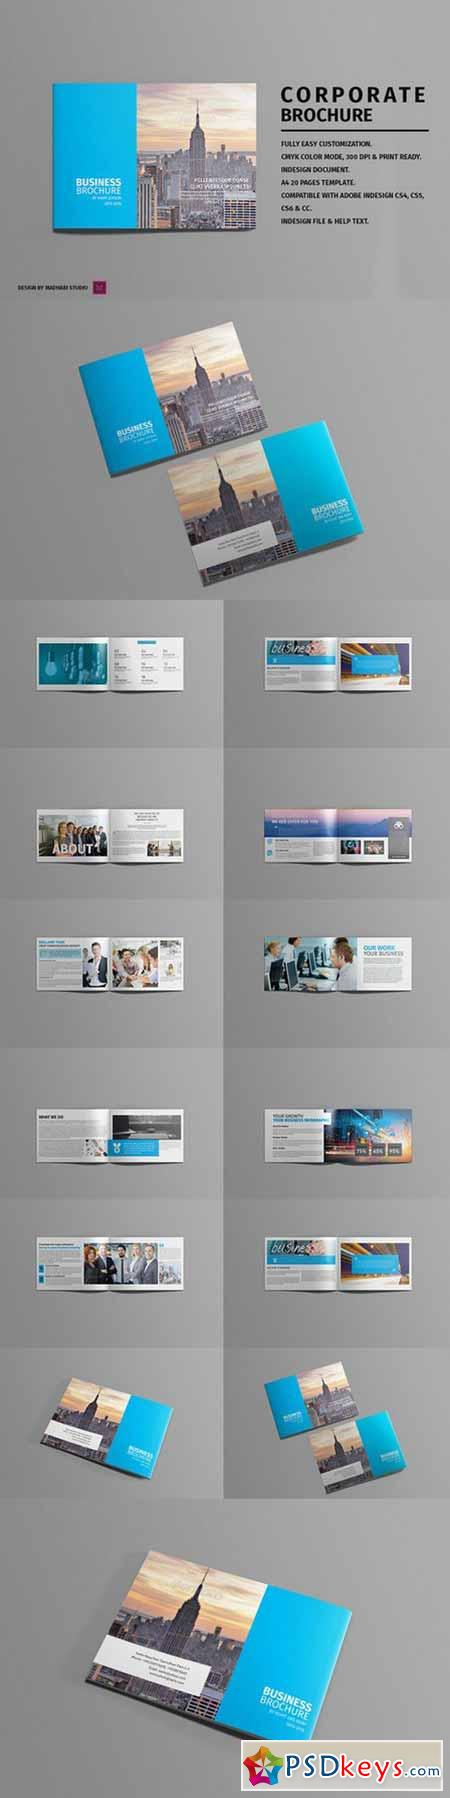 Landscape Corporate Brochure 339533